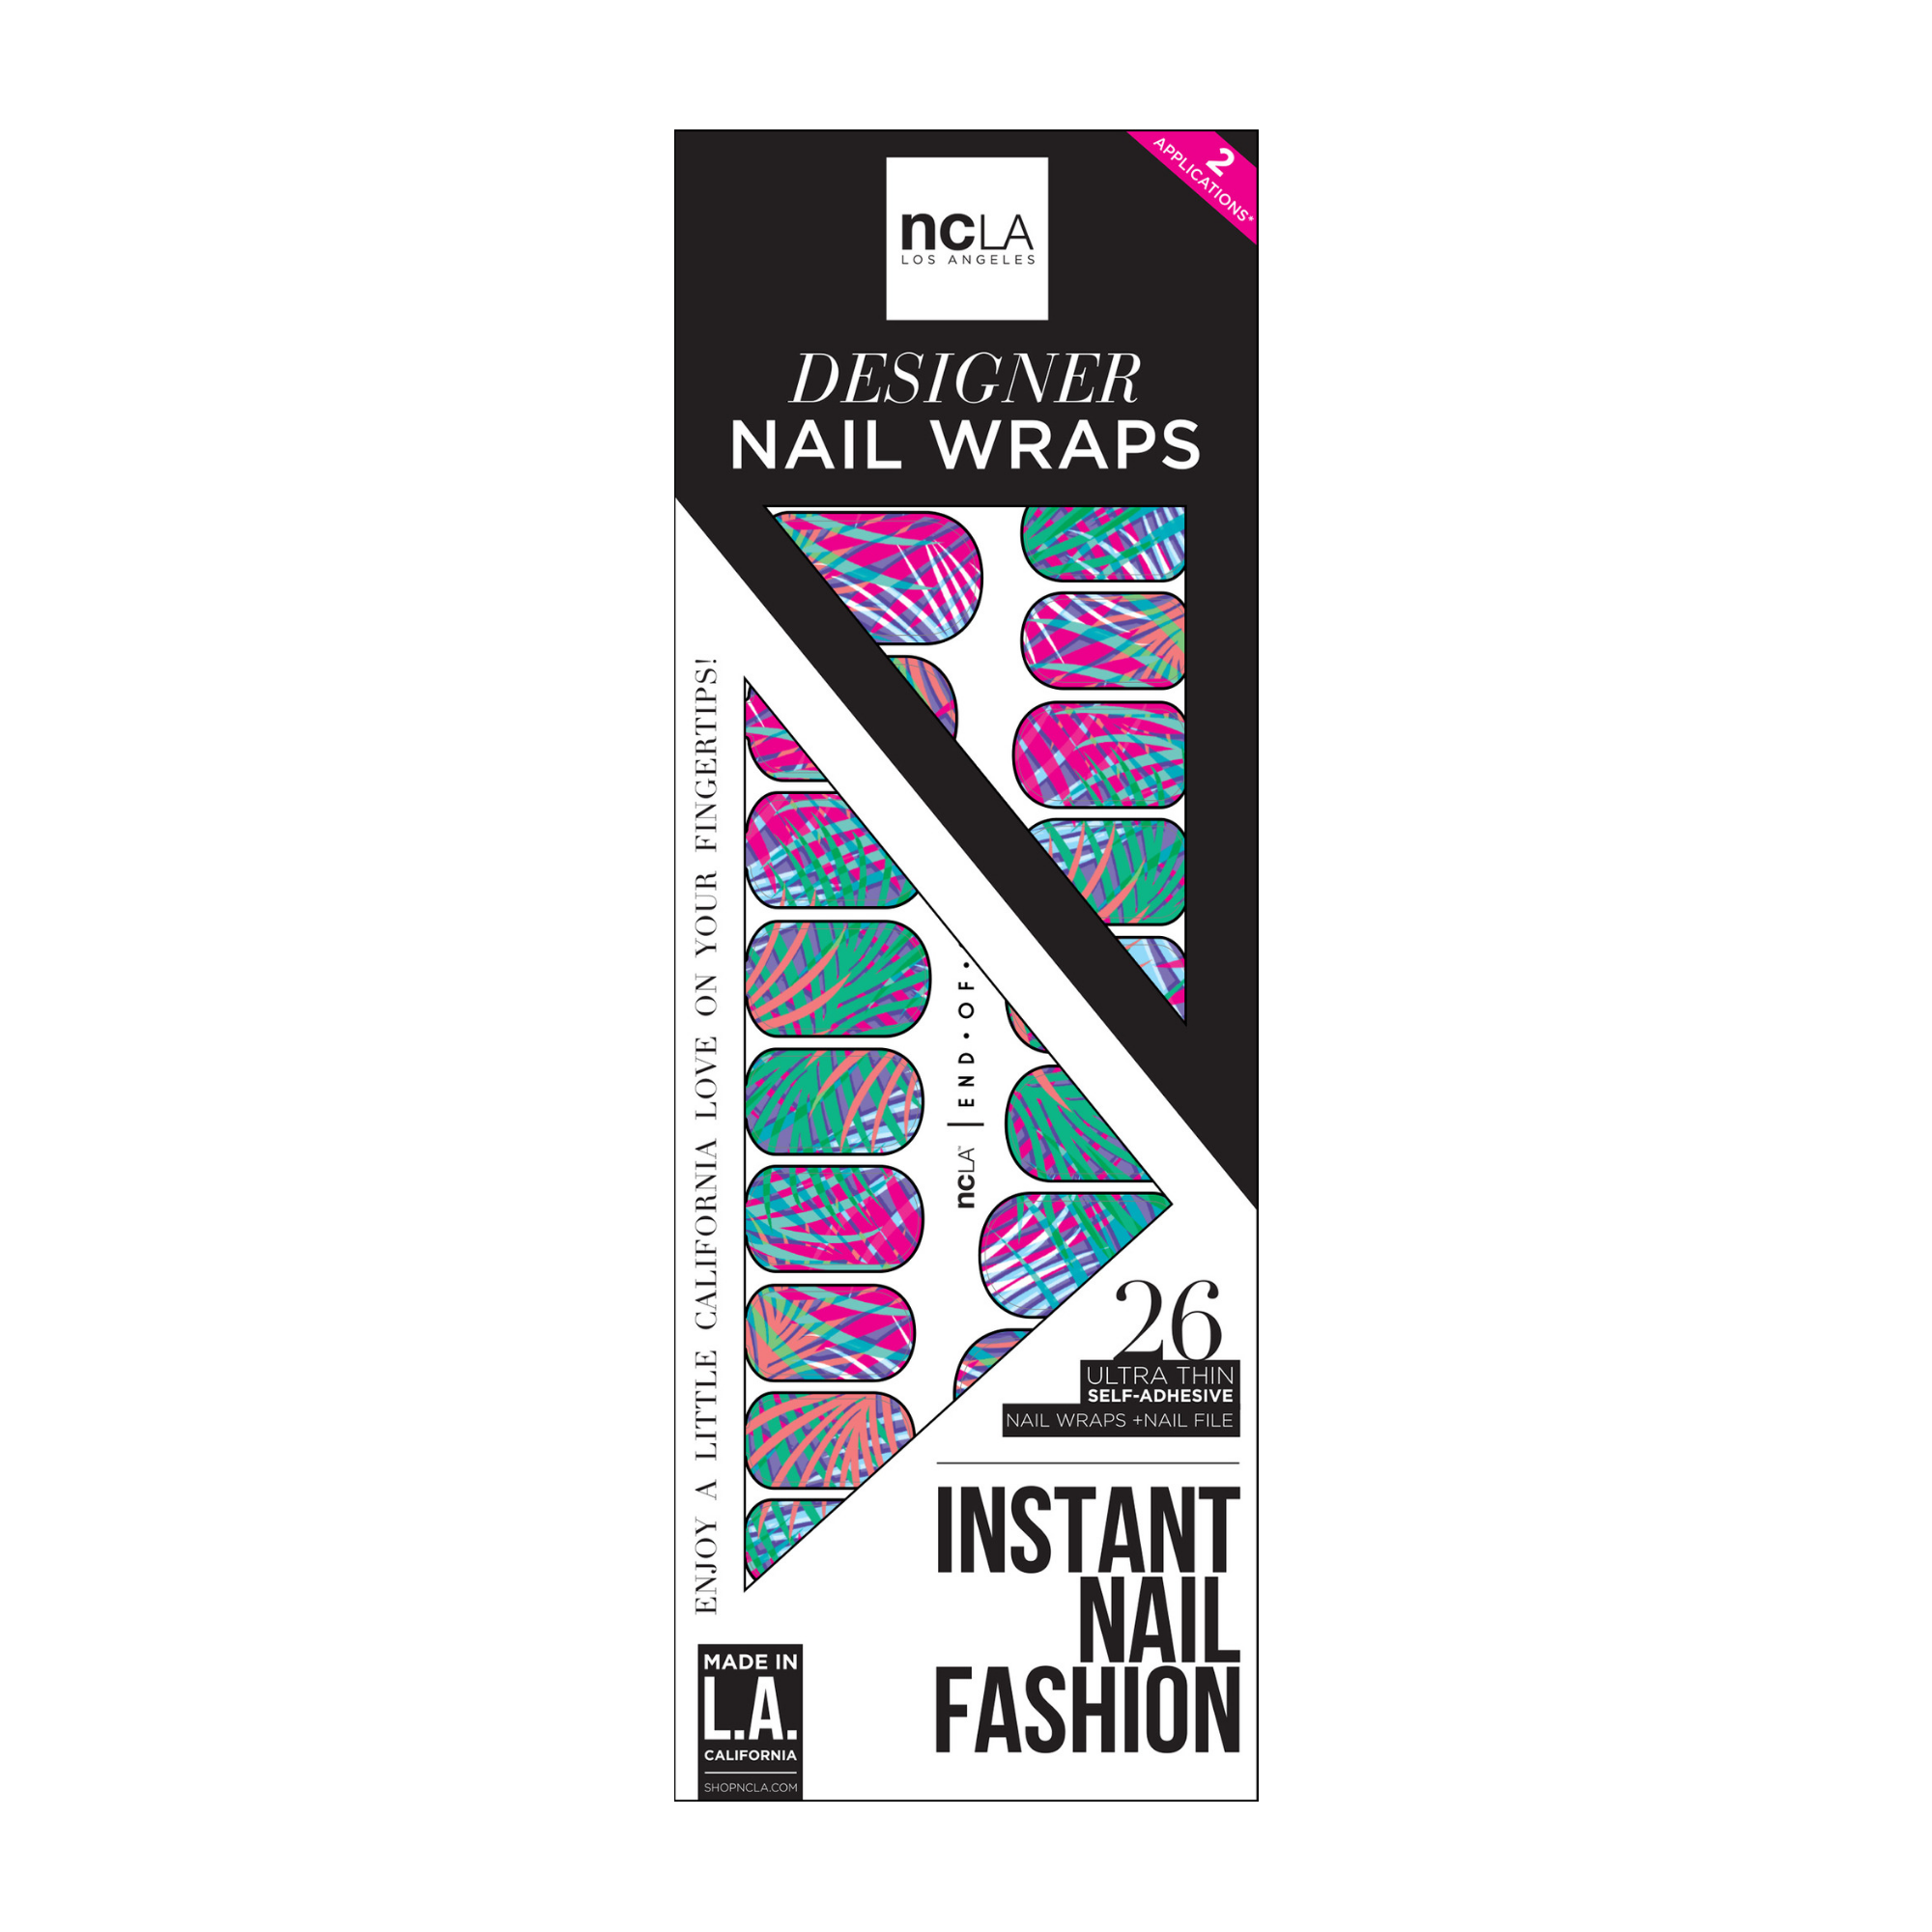 NCLA Nail Wraps End Of Summer